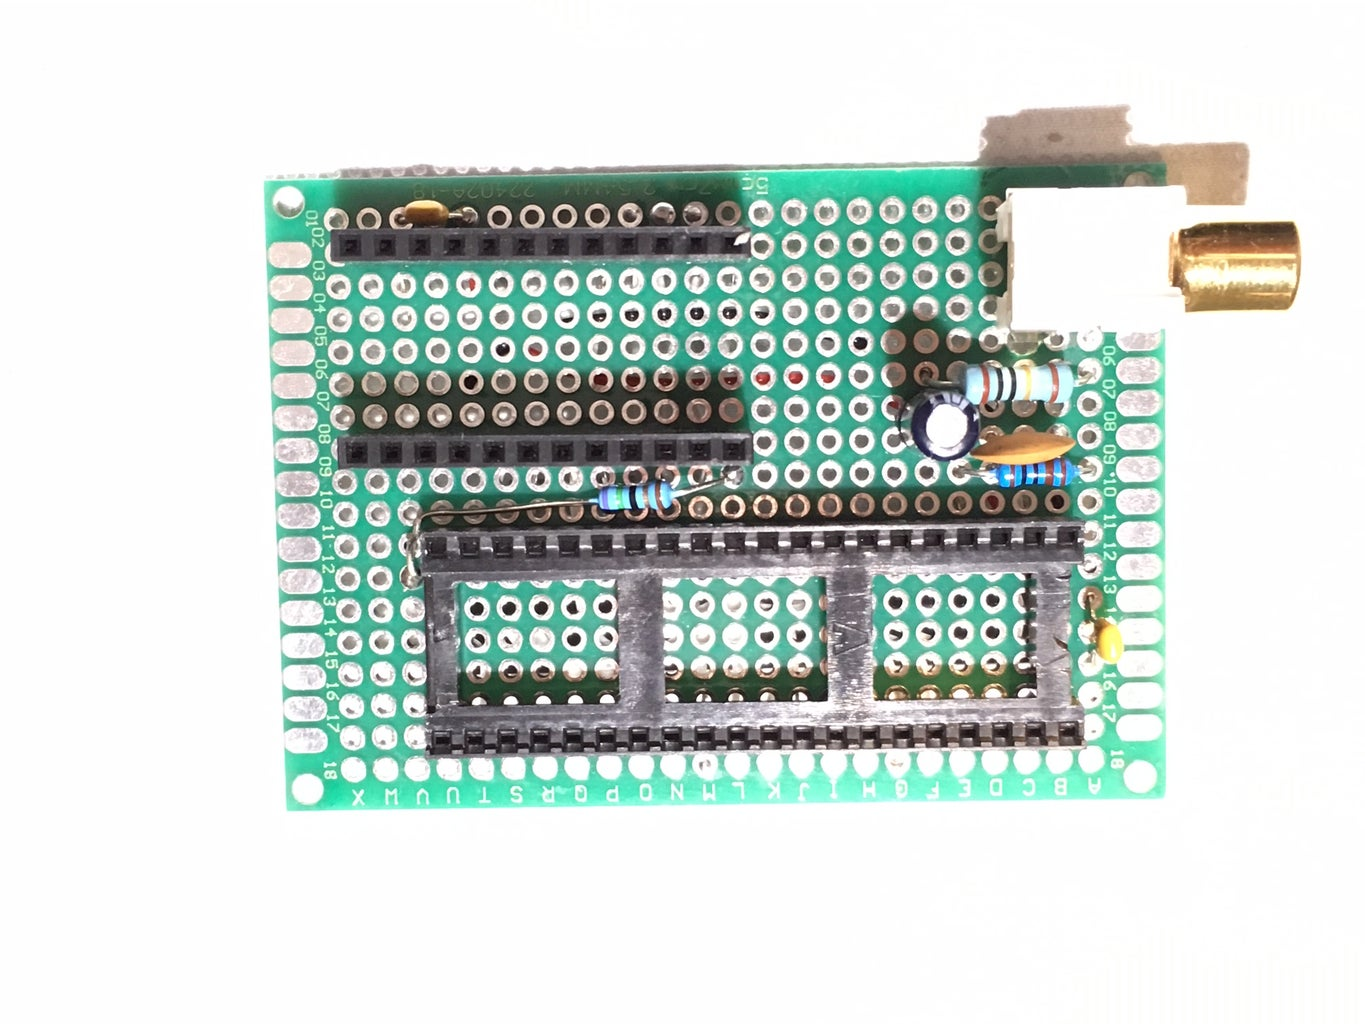 Laying Out the Circuit Board